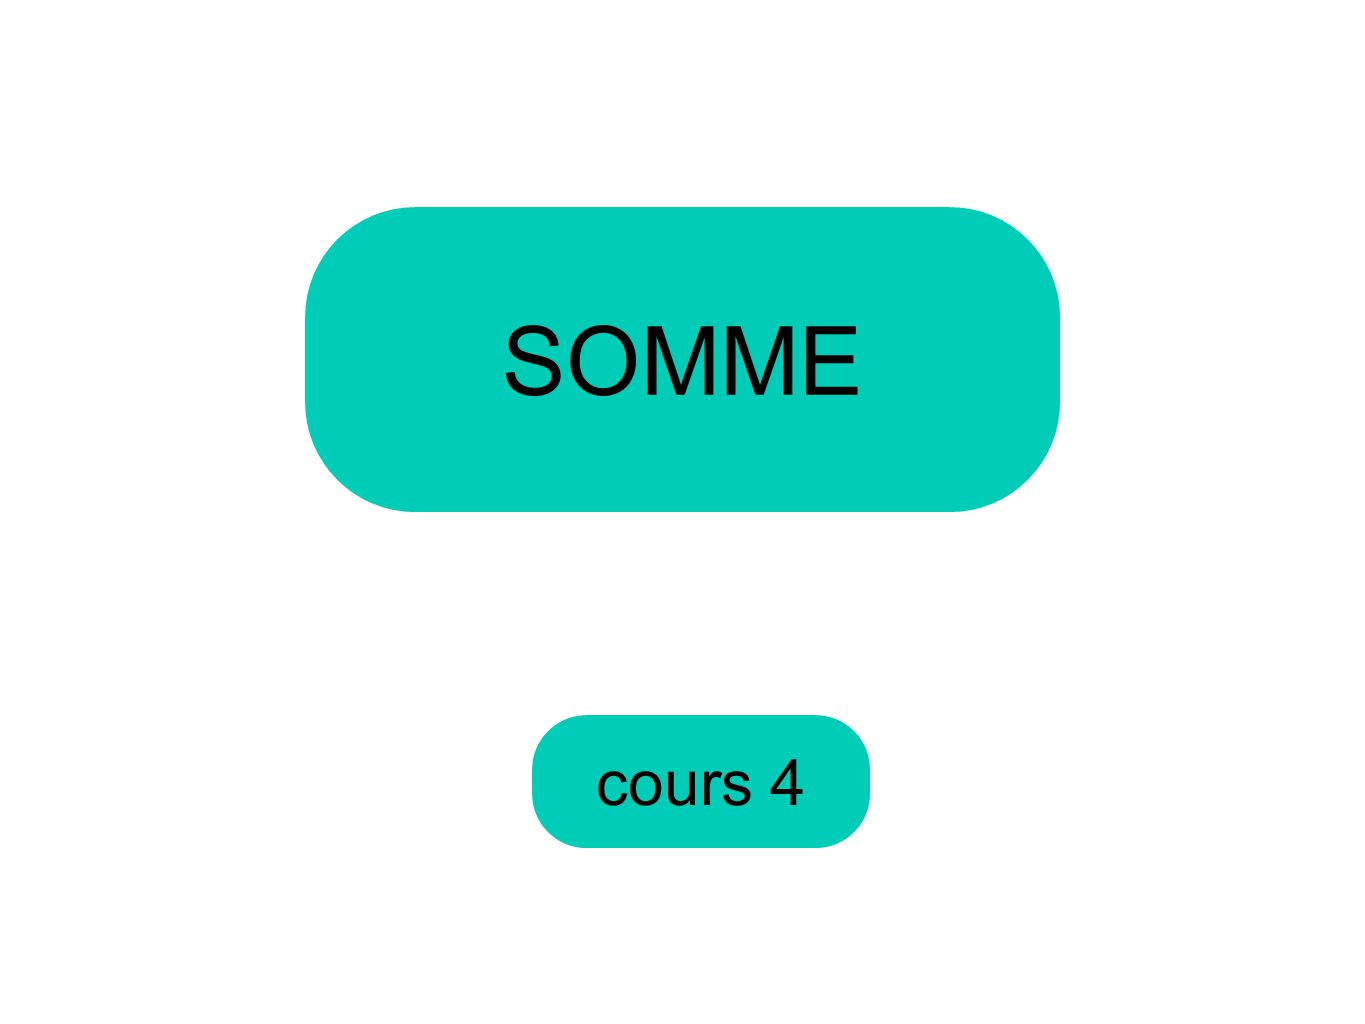 SOMME cours 4